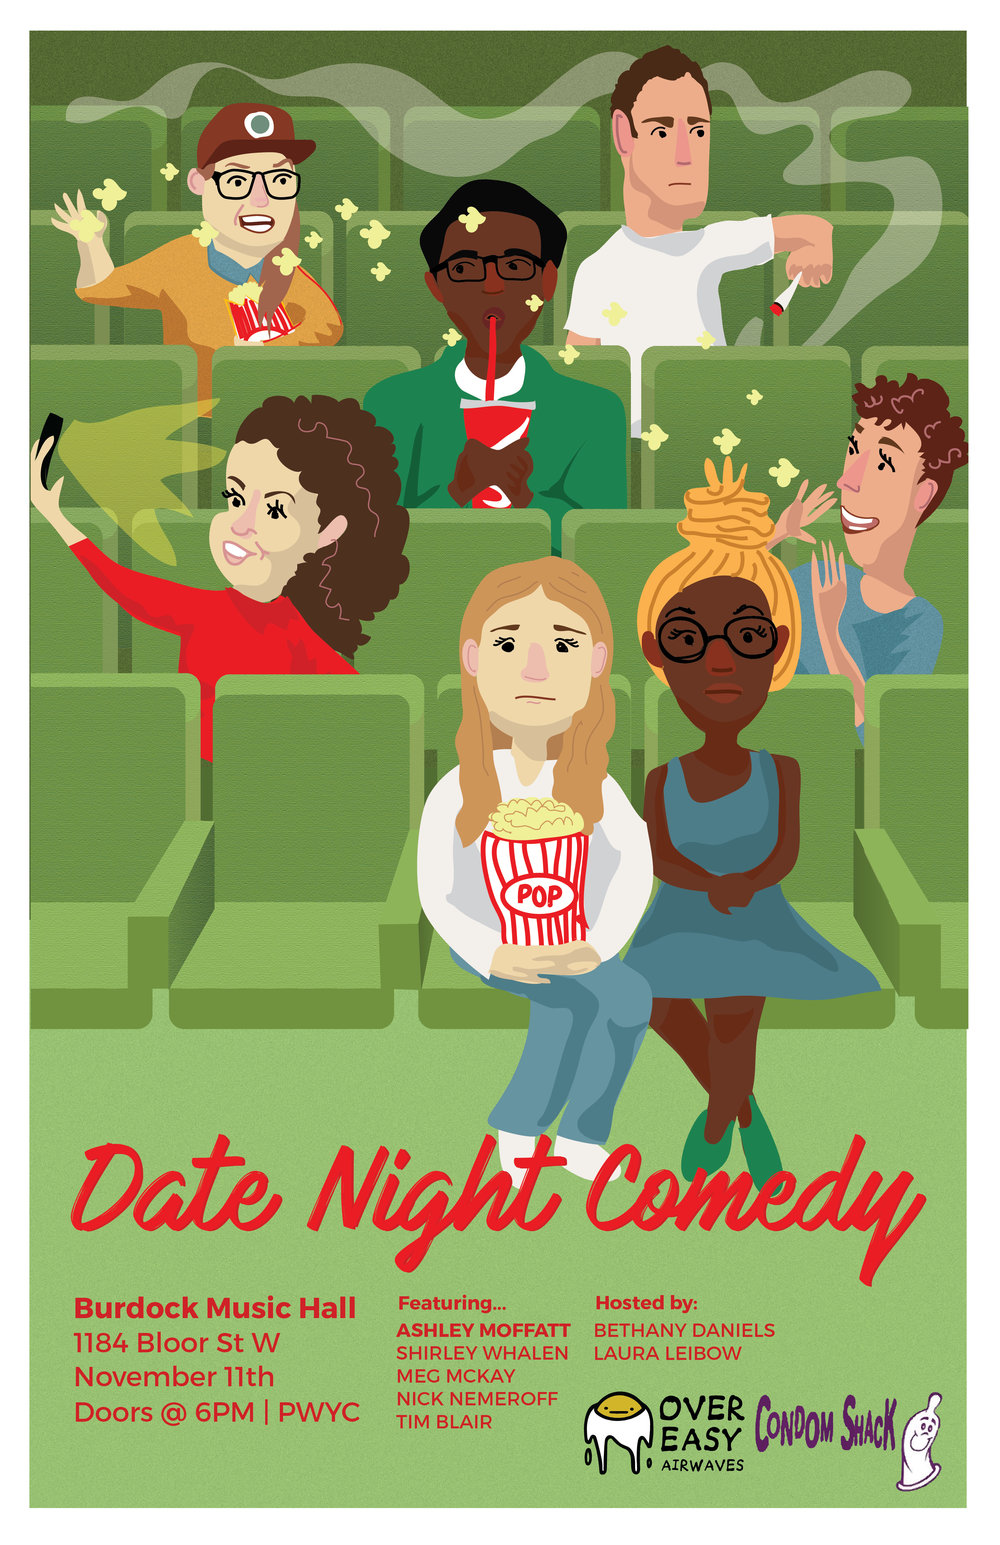 DateNightComedy1Poster.jpg